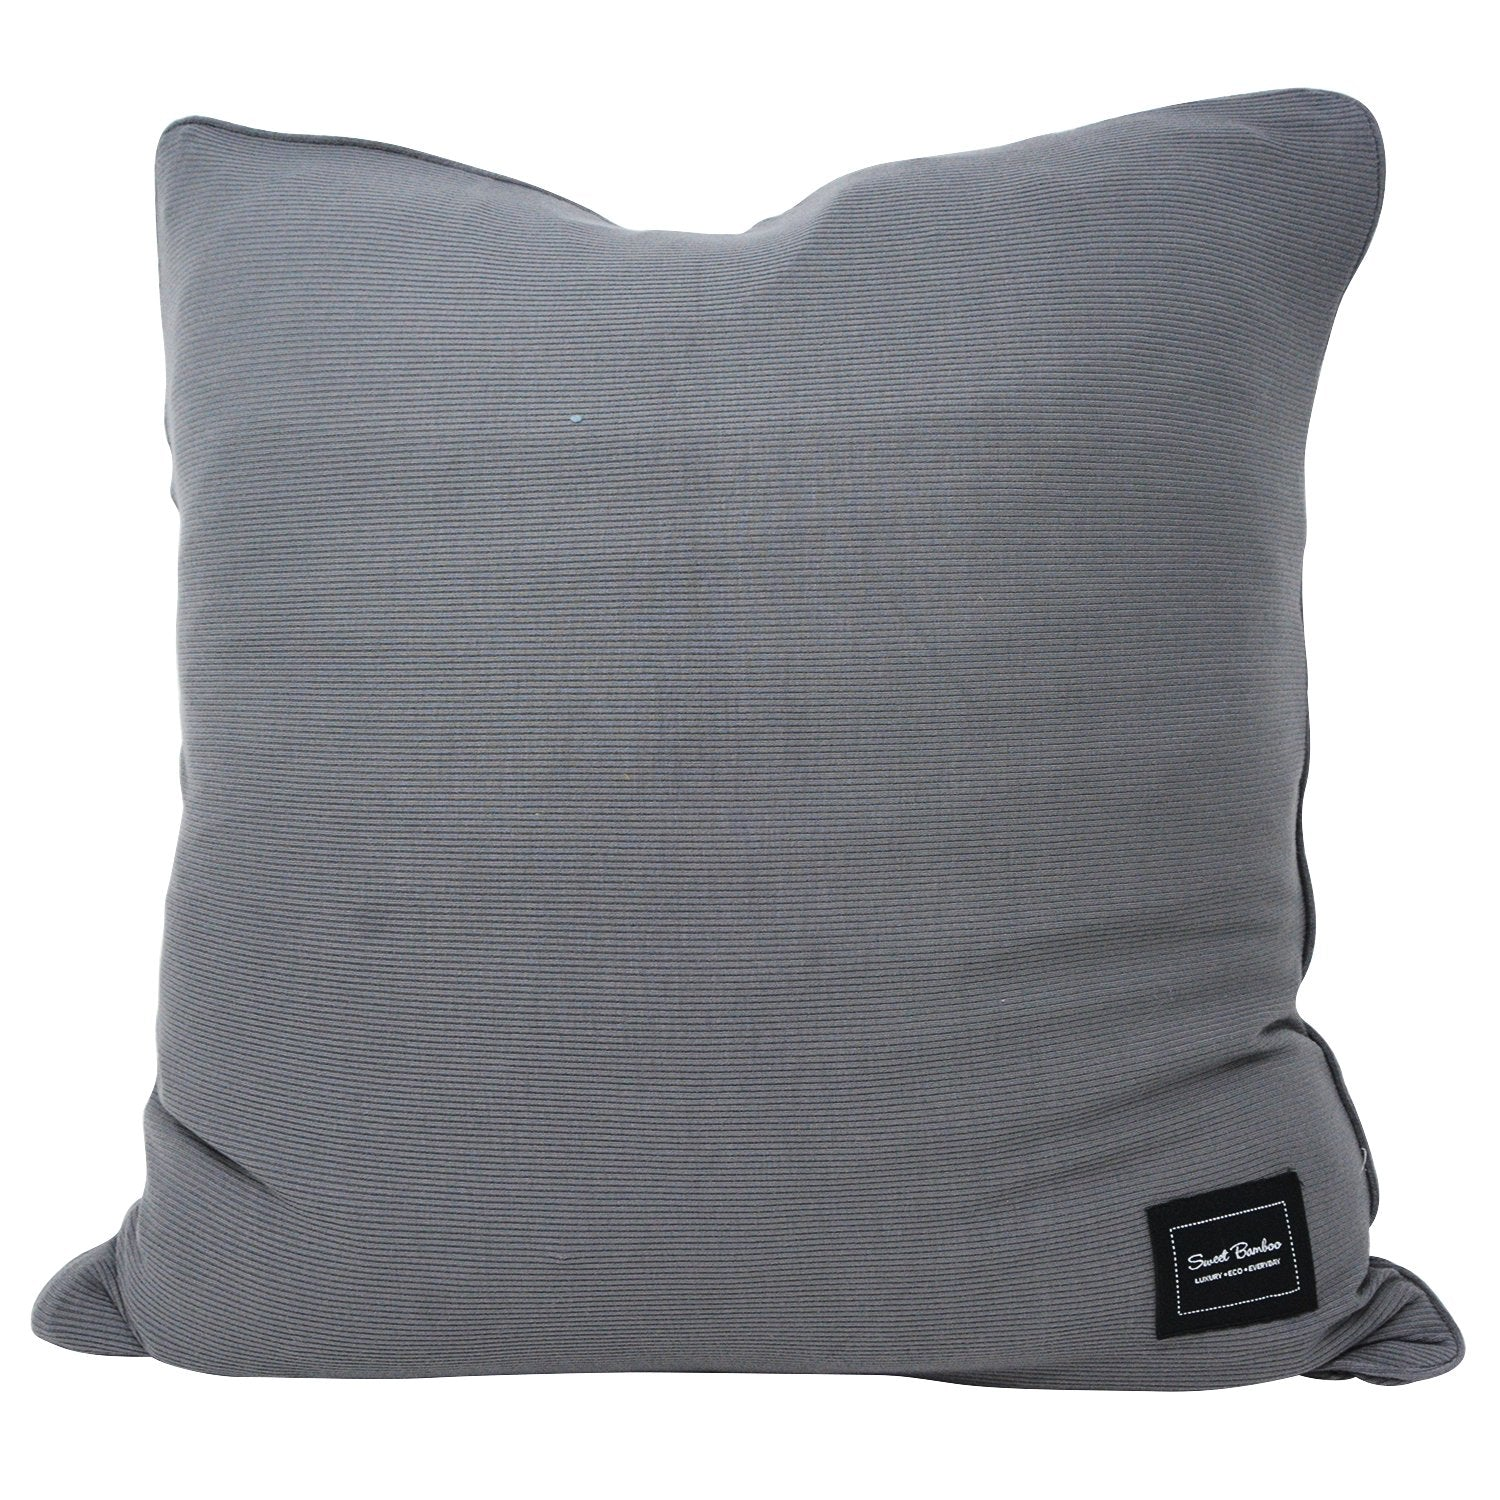 Decorative Pillow Sham (Square) - Charcoal Ribbed - Sweet Bamboo